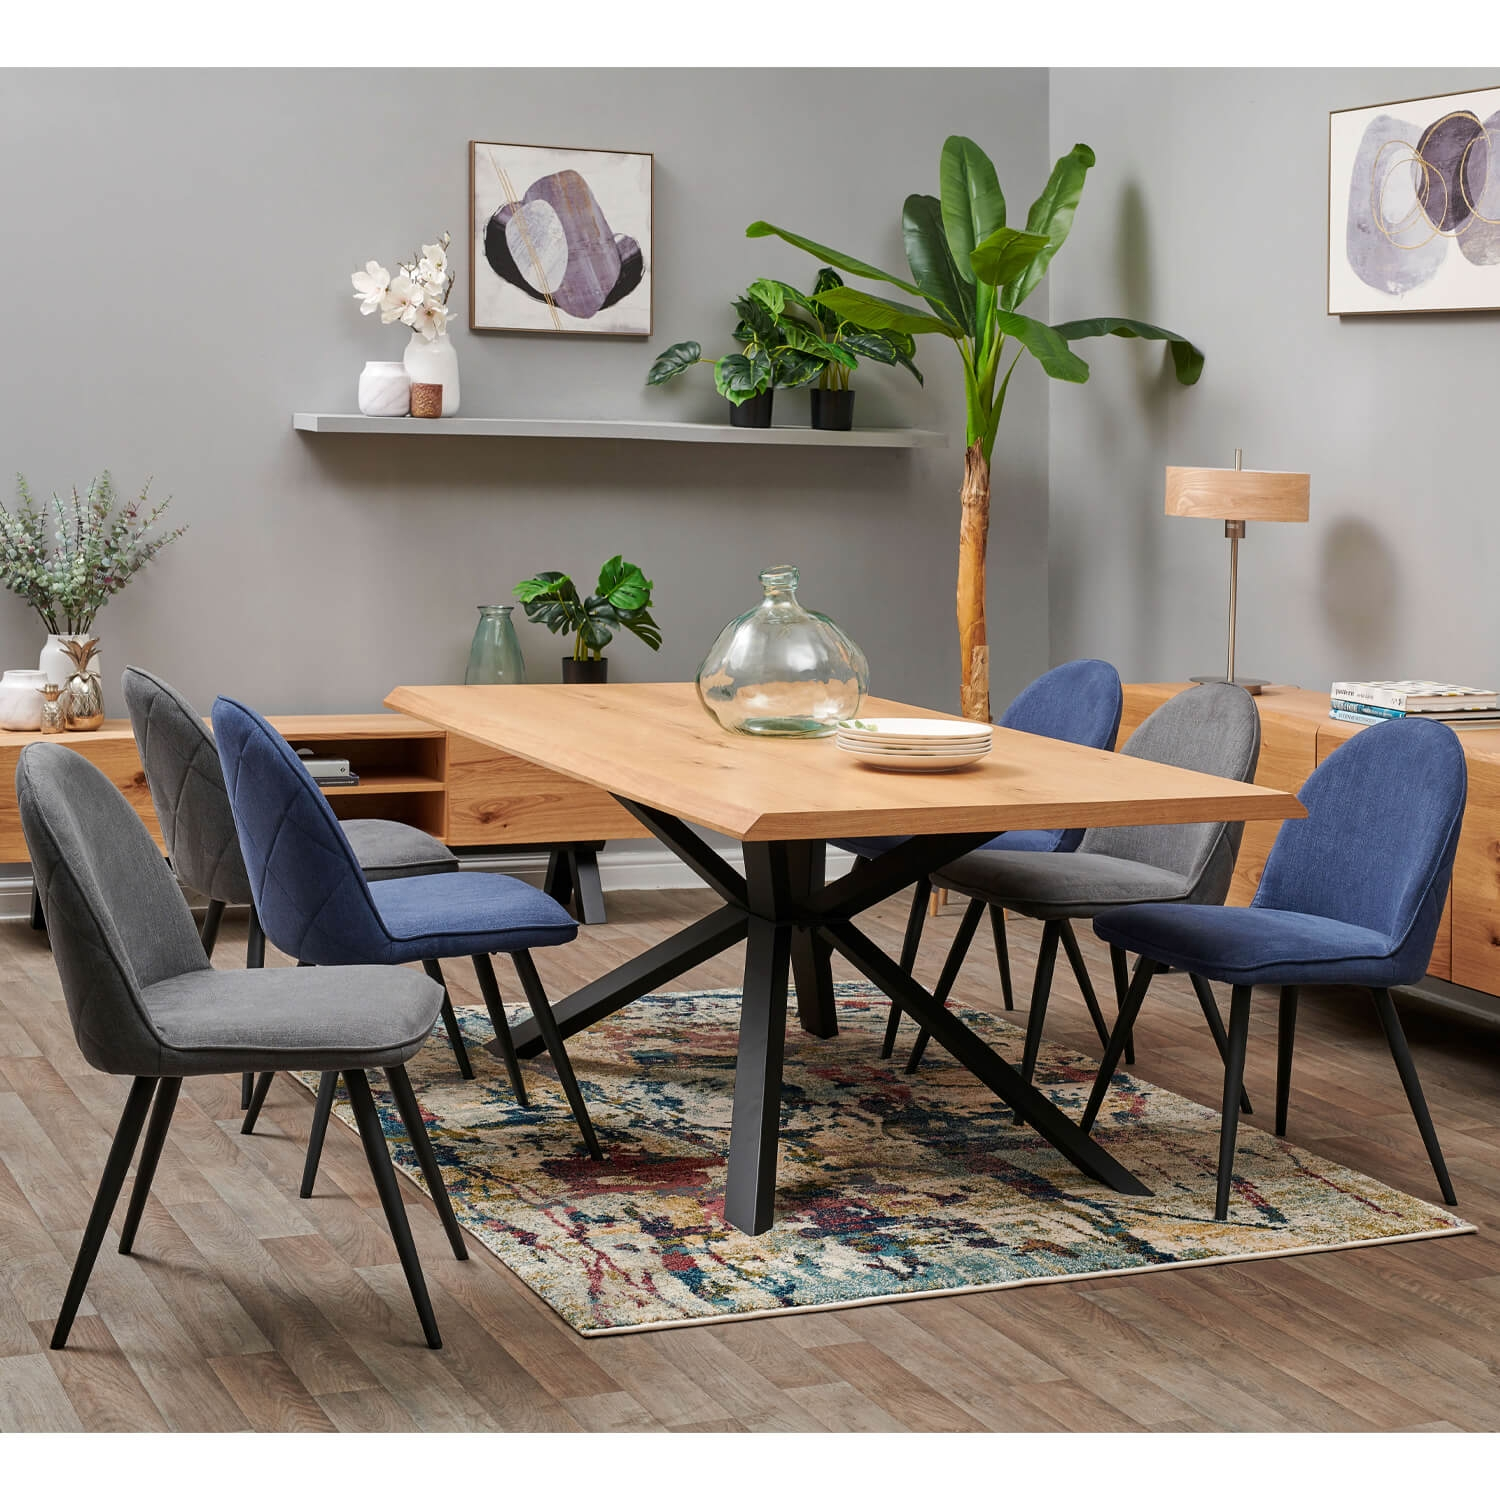 Image of Casa Adelaide Table & 6 Chairs Dining Set